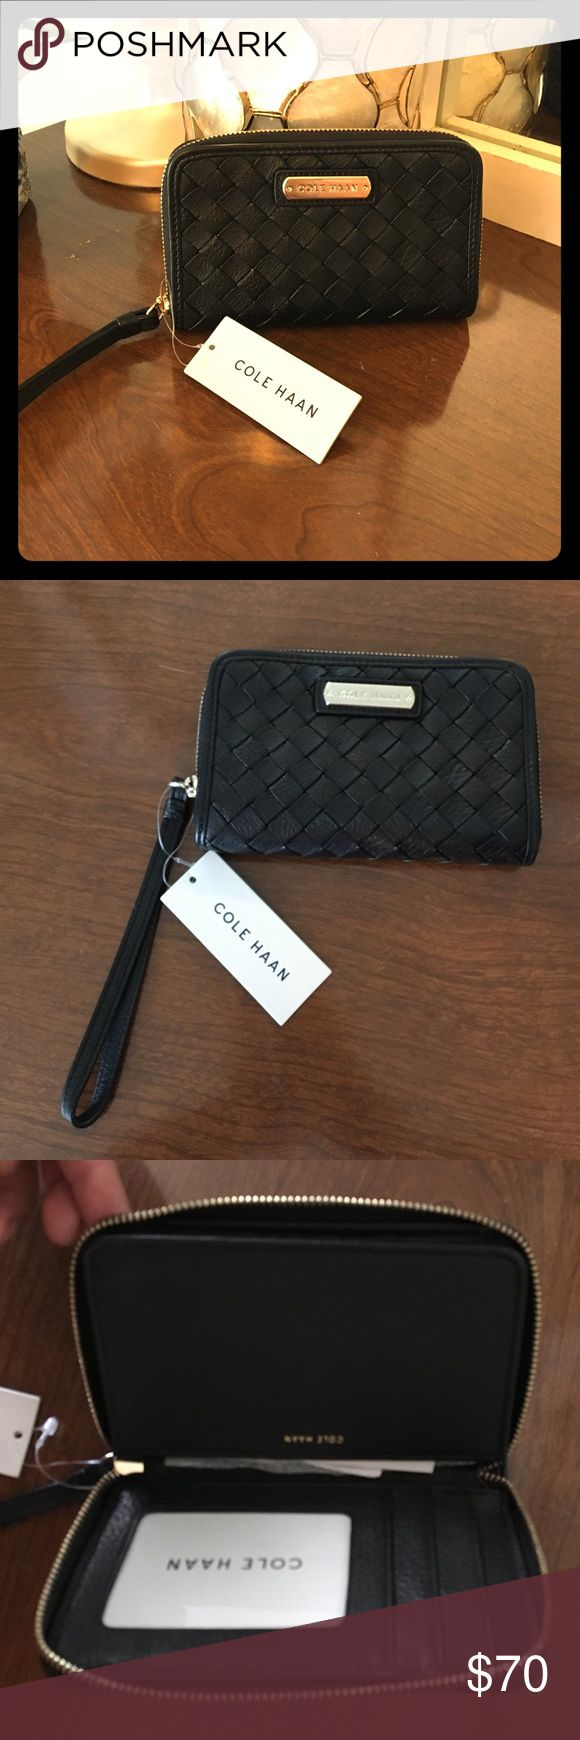 """Cole Haan smartphone wallet in woven black Cole Haan smart phone wallet in woven black leather. Has wrist strap for ease of carrying! Zips open to show clear ID window and card slots, plus space for storing phone. Will fit Galaxy or iPhone 6. NWT. Measures 3.75"""" x 5.75"""" x 1"""". Cole Haan Bags Wallets"""